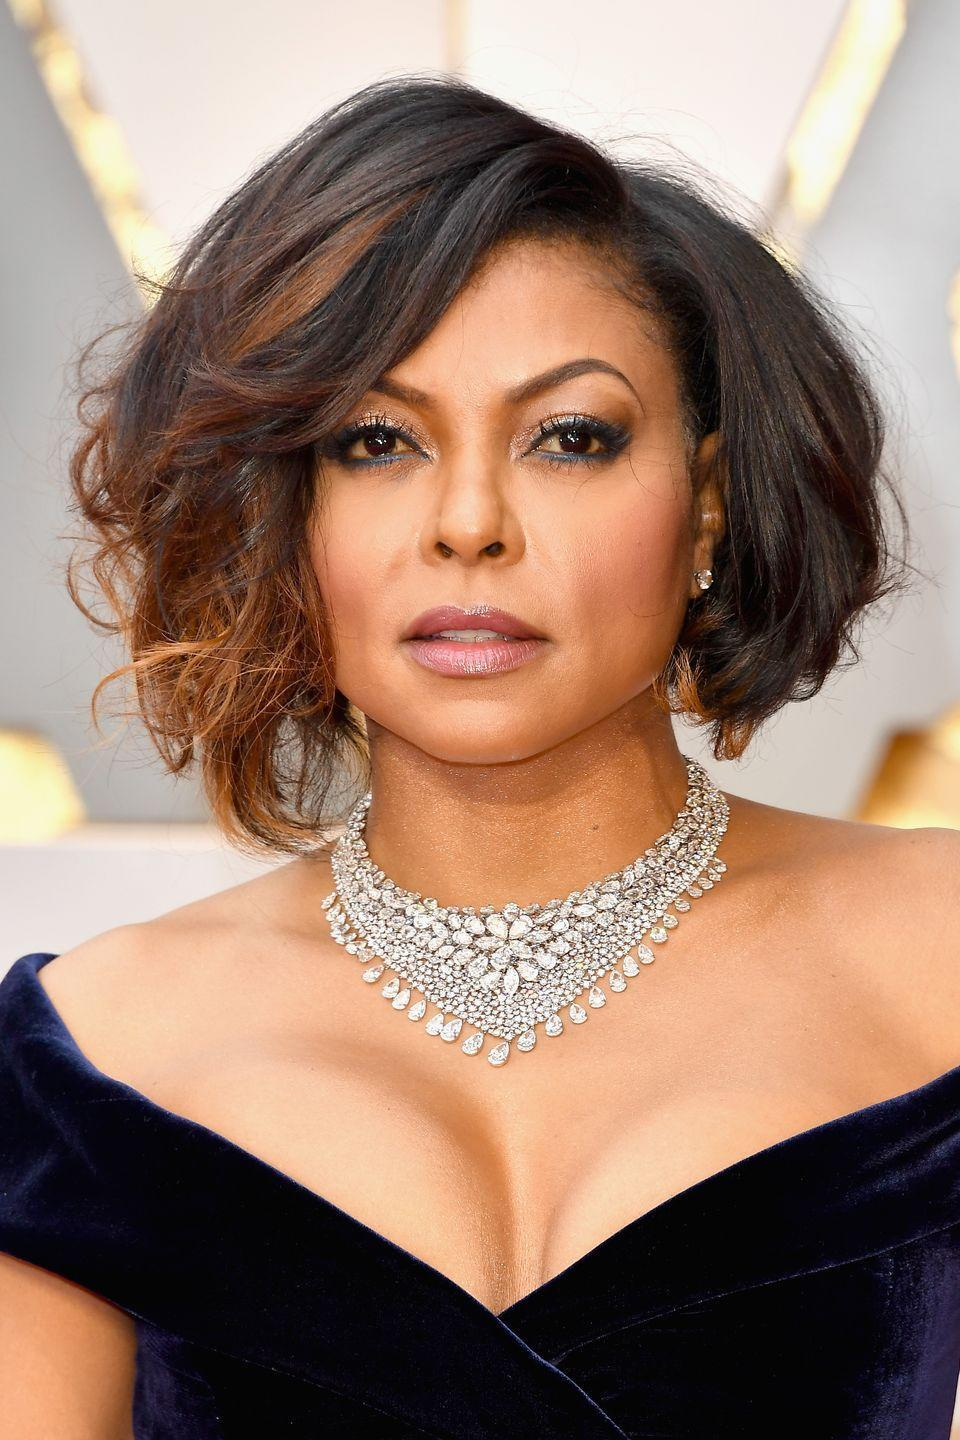 <p>The more curls the merrier, as stunningly showcased by Taraji P. Henson. Glamorous curls breathe so much life into bob cuts, and look good on every face shape to be honest. </p>